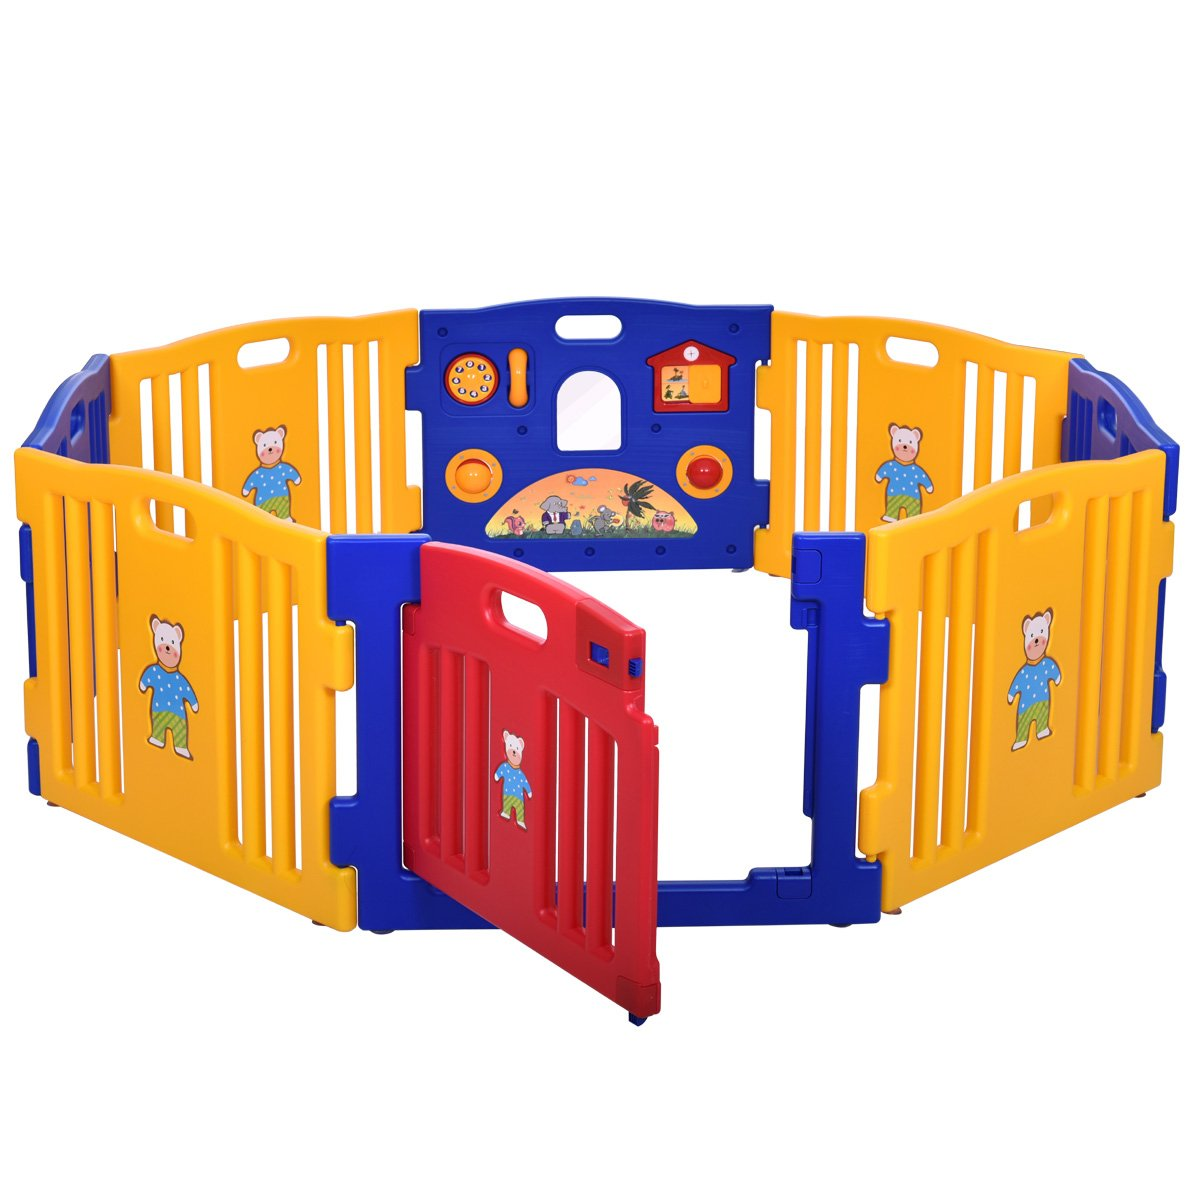 LAZYMOON Baby Playpen 8 Panel Foldable High PE Frame Kids Play Center Yard Indoor Outdoor Playards